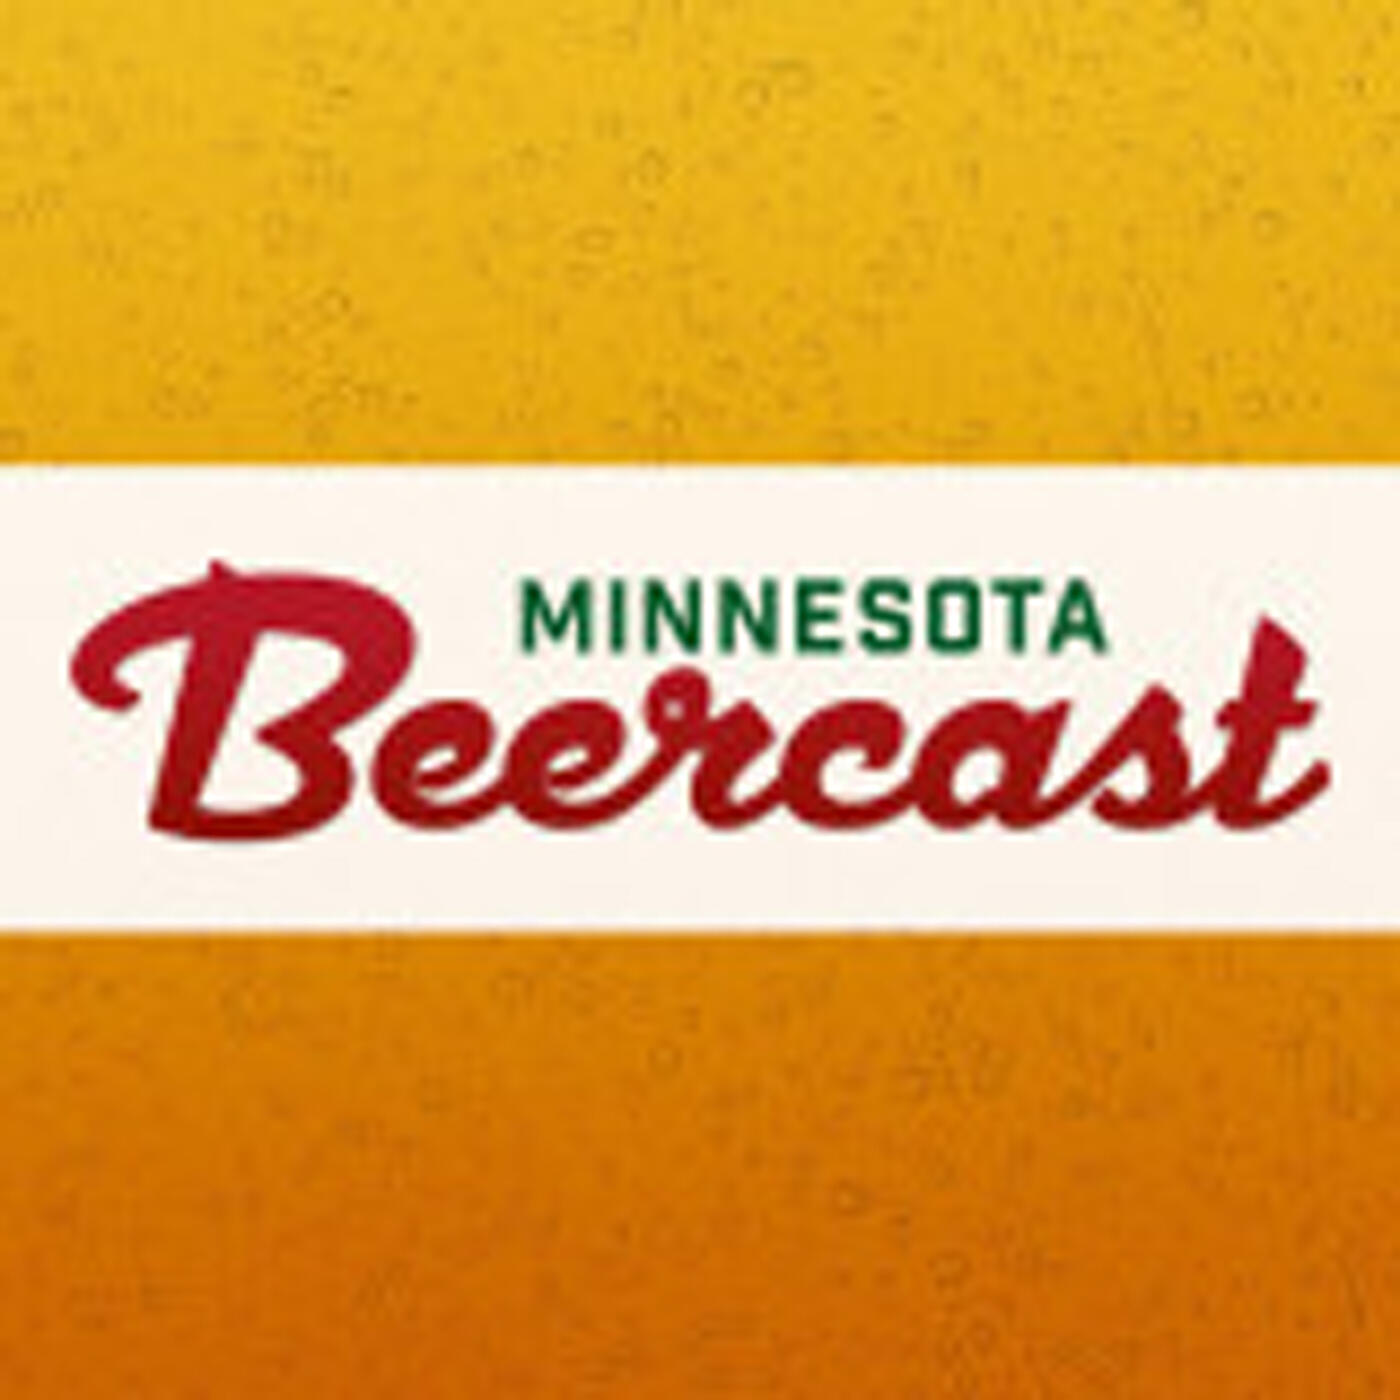 Listen to Northern Lights Preview, Steel Toe & Fair State! | The Minnesota BeerCast | Podcasts